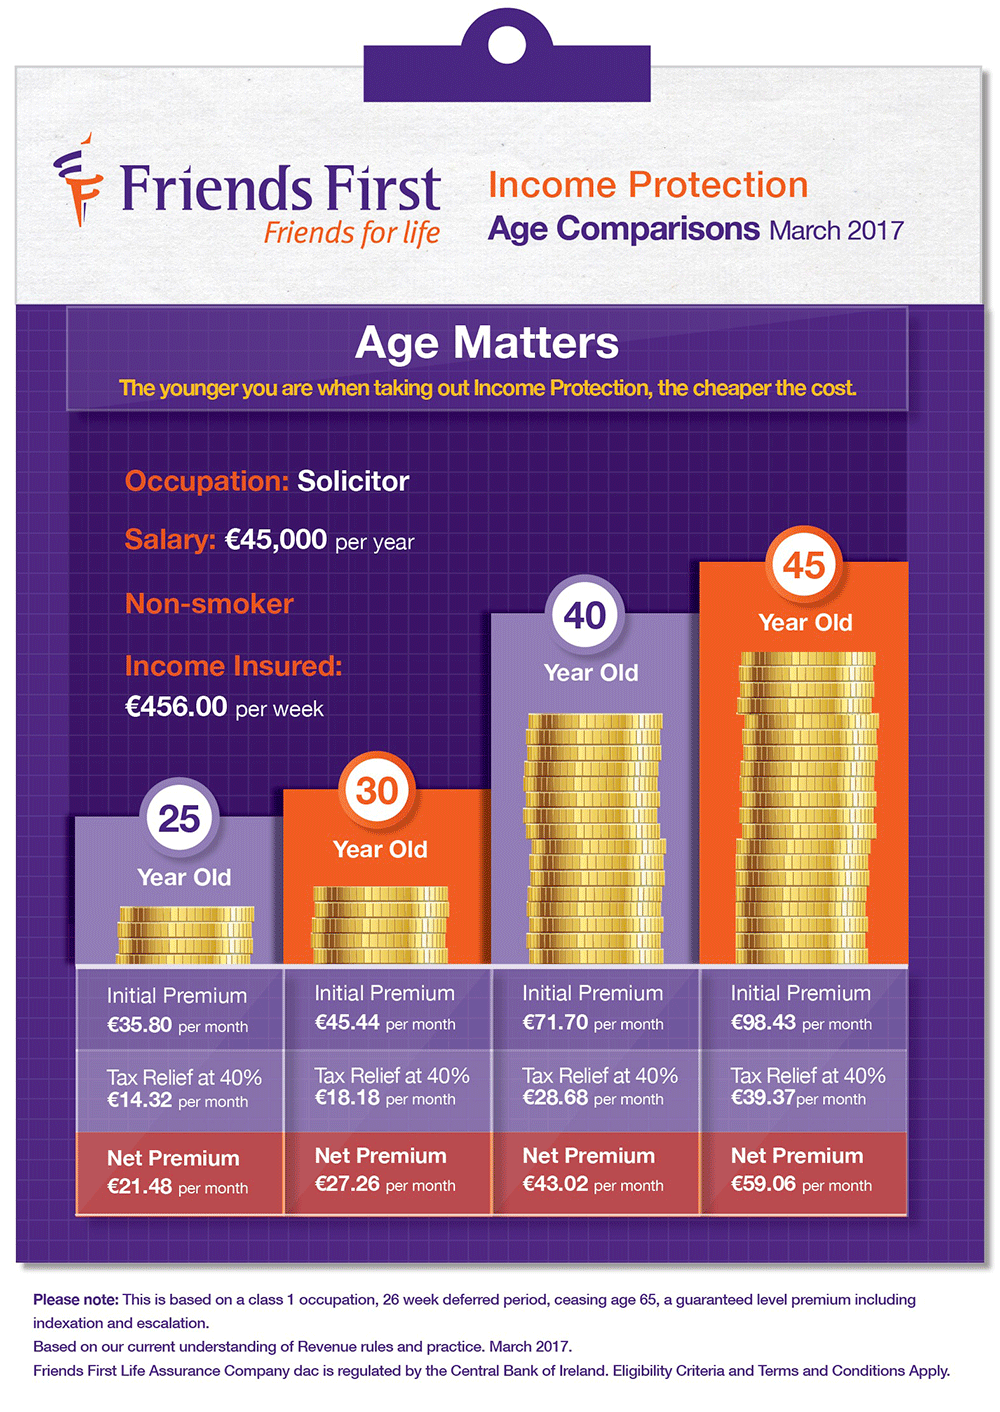 Friends First Age Matters Infographic png